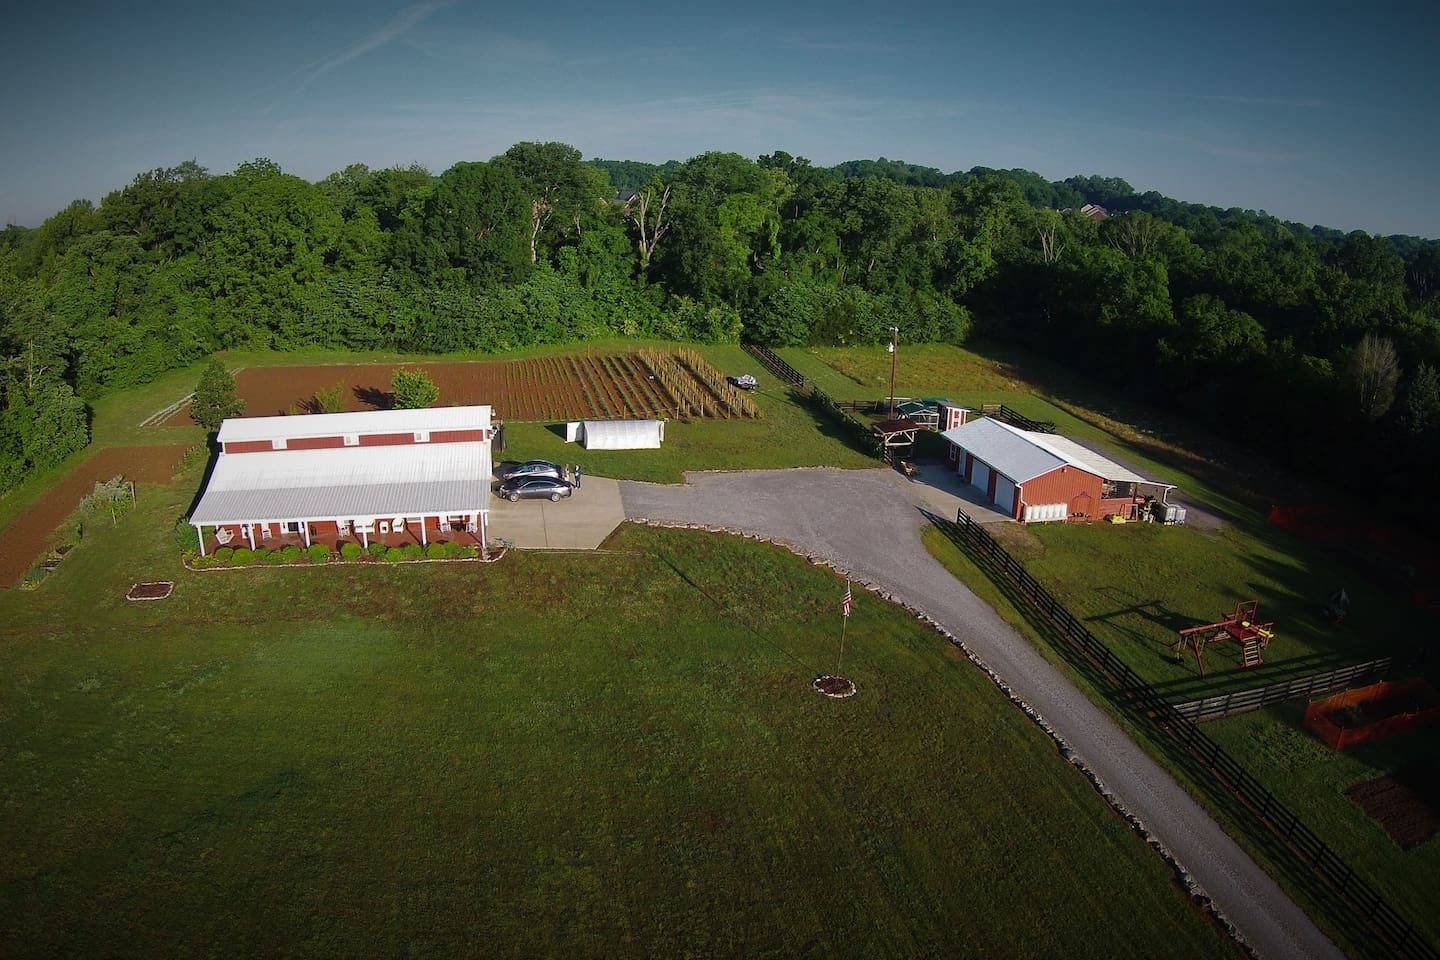 Aerial view of the West side of Stoney Creek Farm Franklin, Tennessee.  The farm sits on 15.34 beautiful acres only minutes from I-65 and Hwy 96.